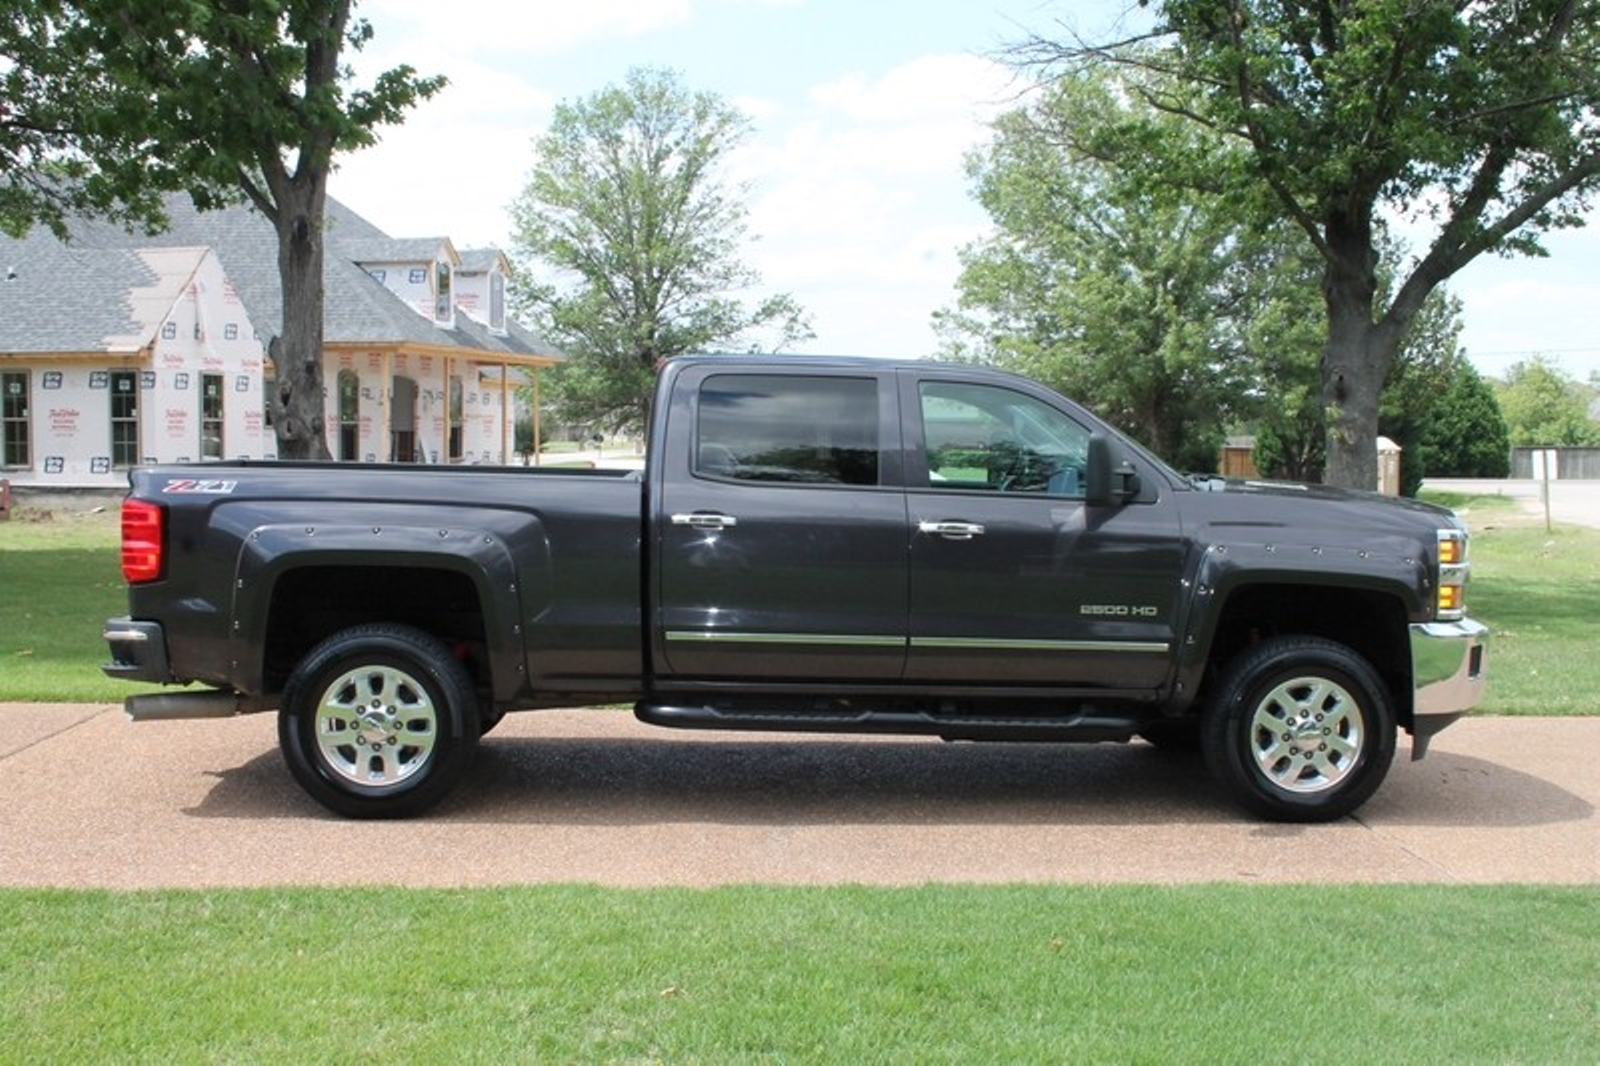 2015 chevrolet silverado 2500hd crew cab 4wd duramax diesel ltz price used cars memphis. Black Bedroom Furniture Sets. Home Design Ideas